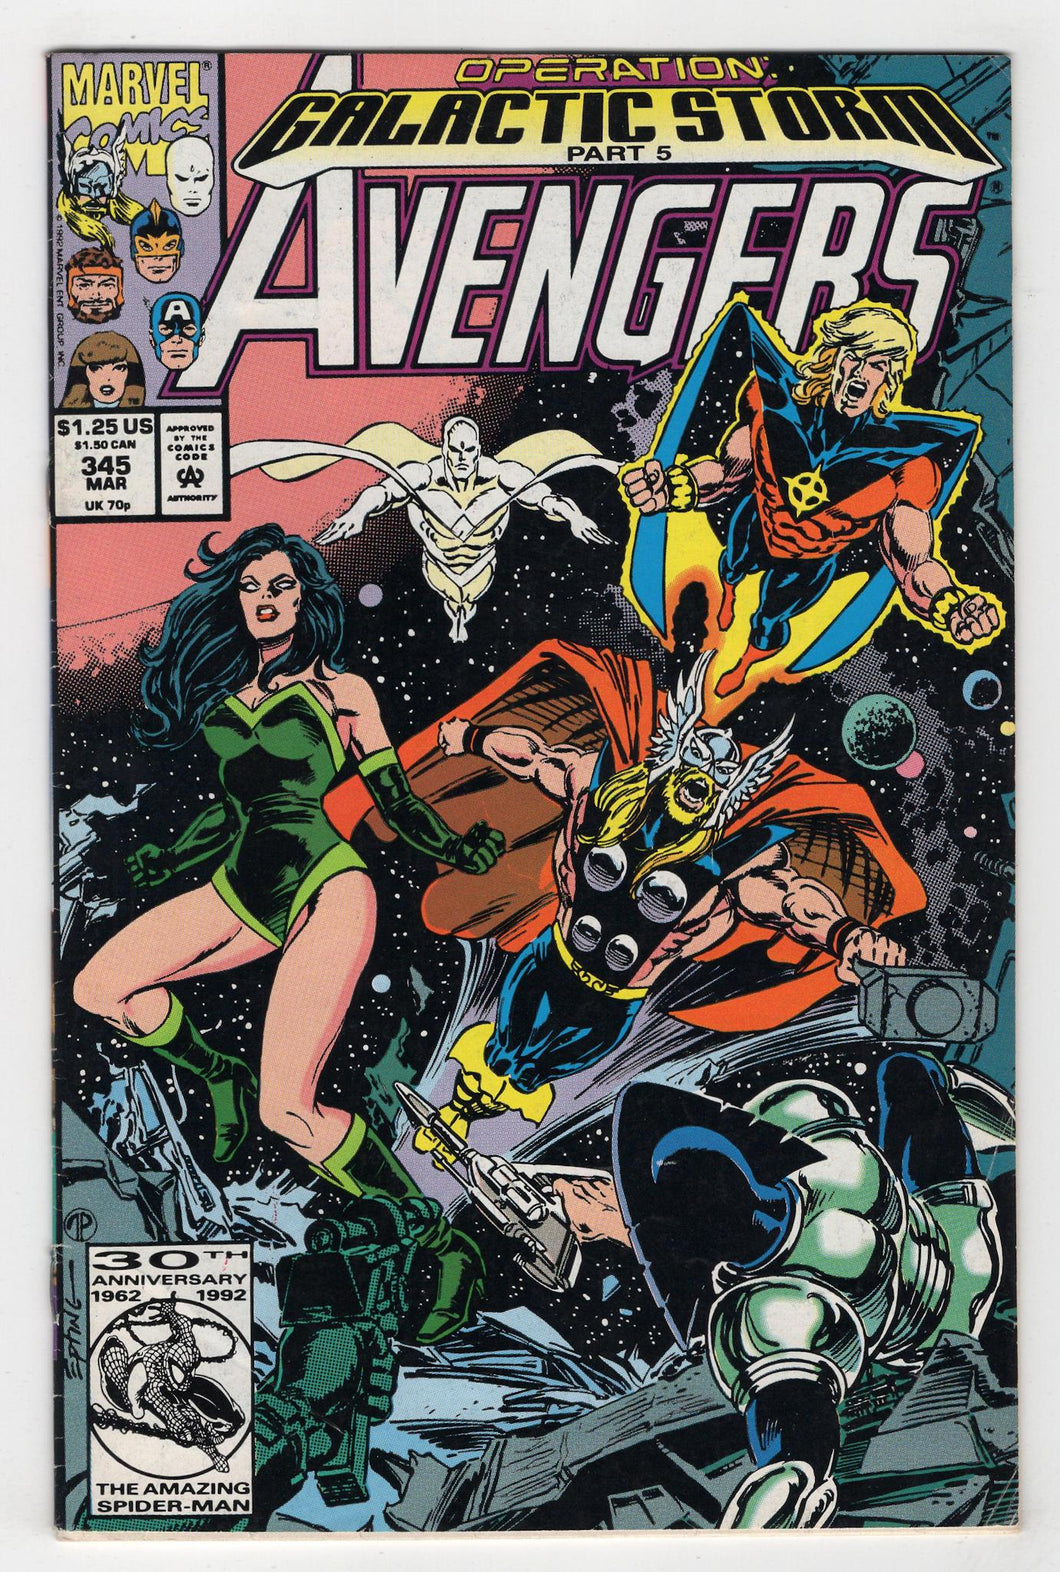 Avengers #345 Cover Front